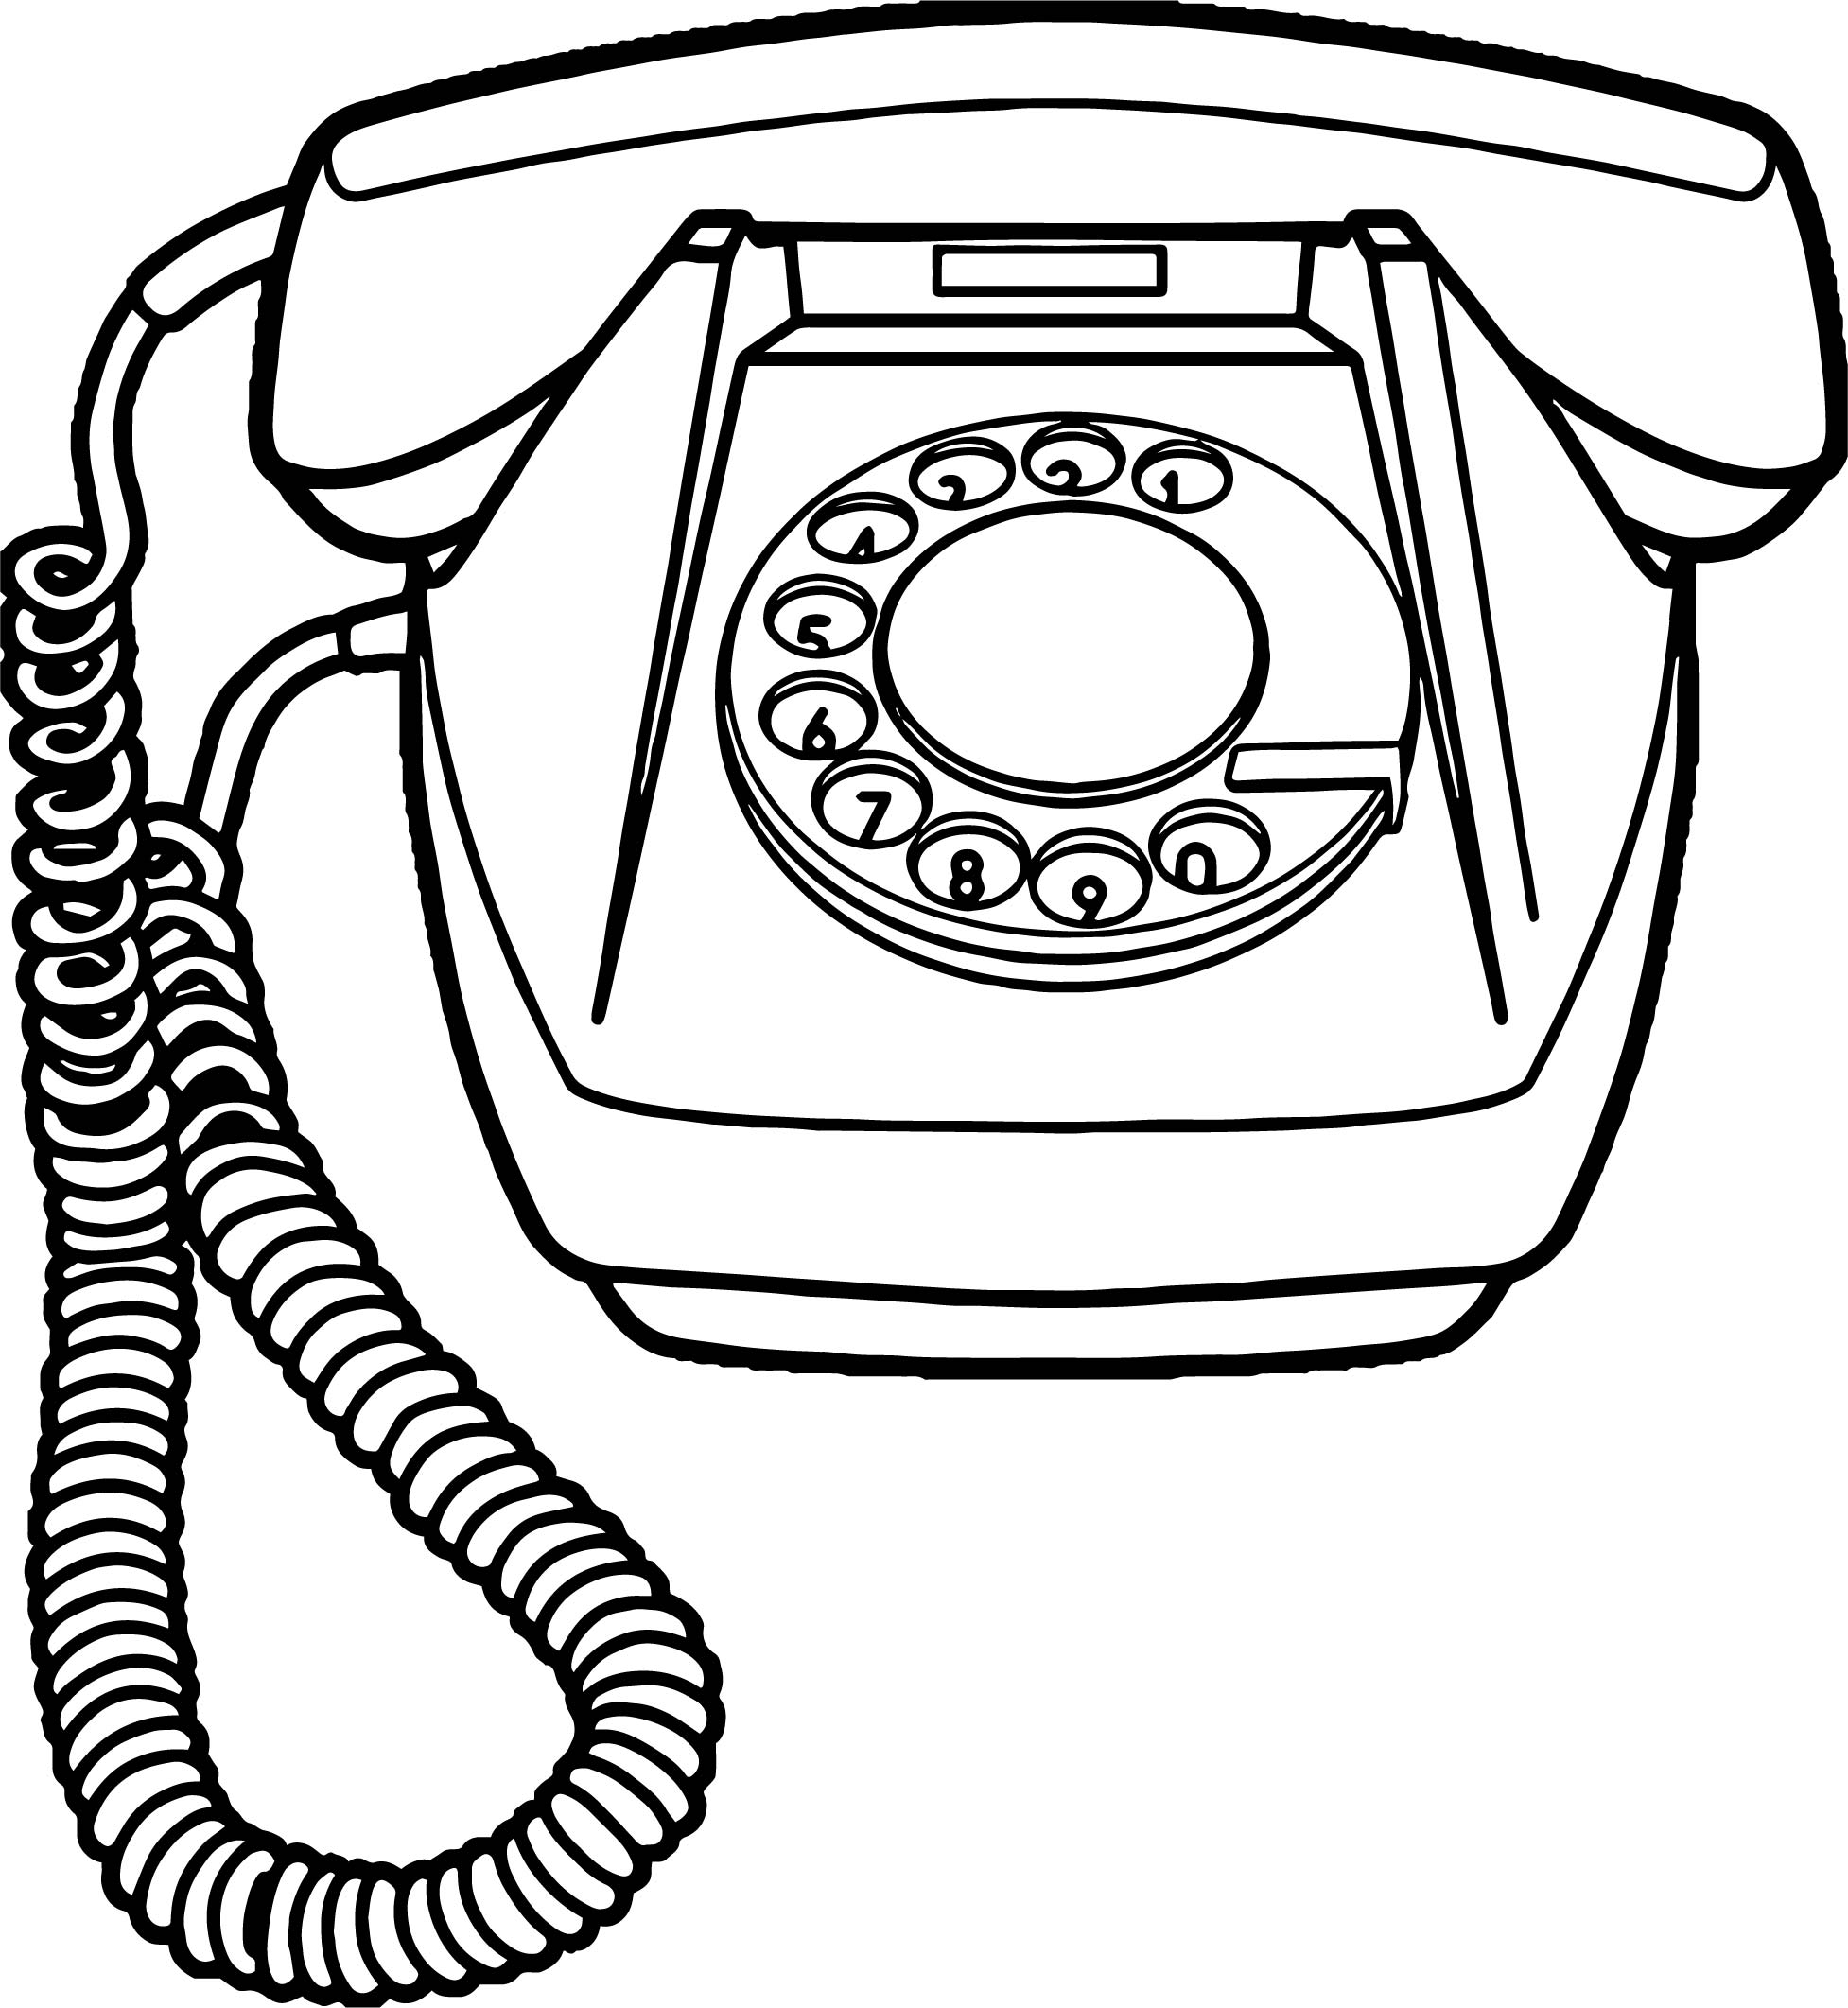 Telephone paintings search result at PaintingValley.com